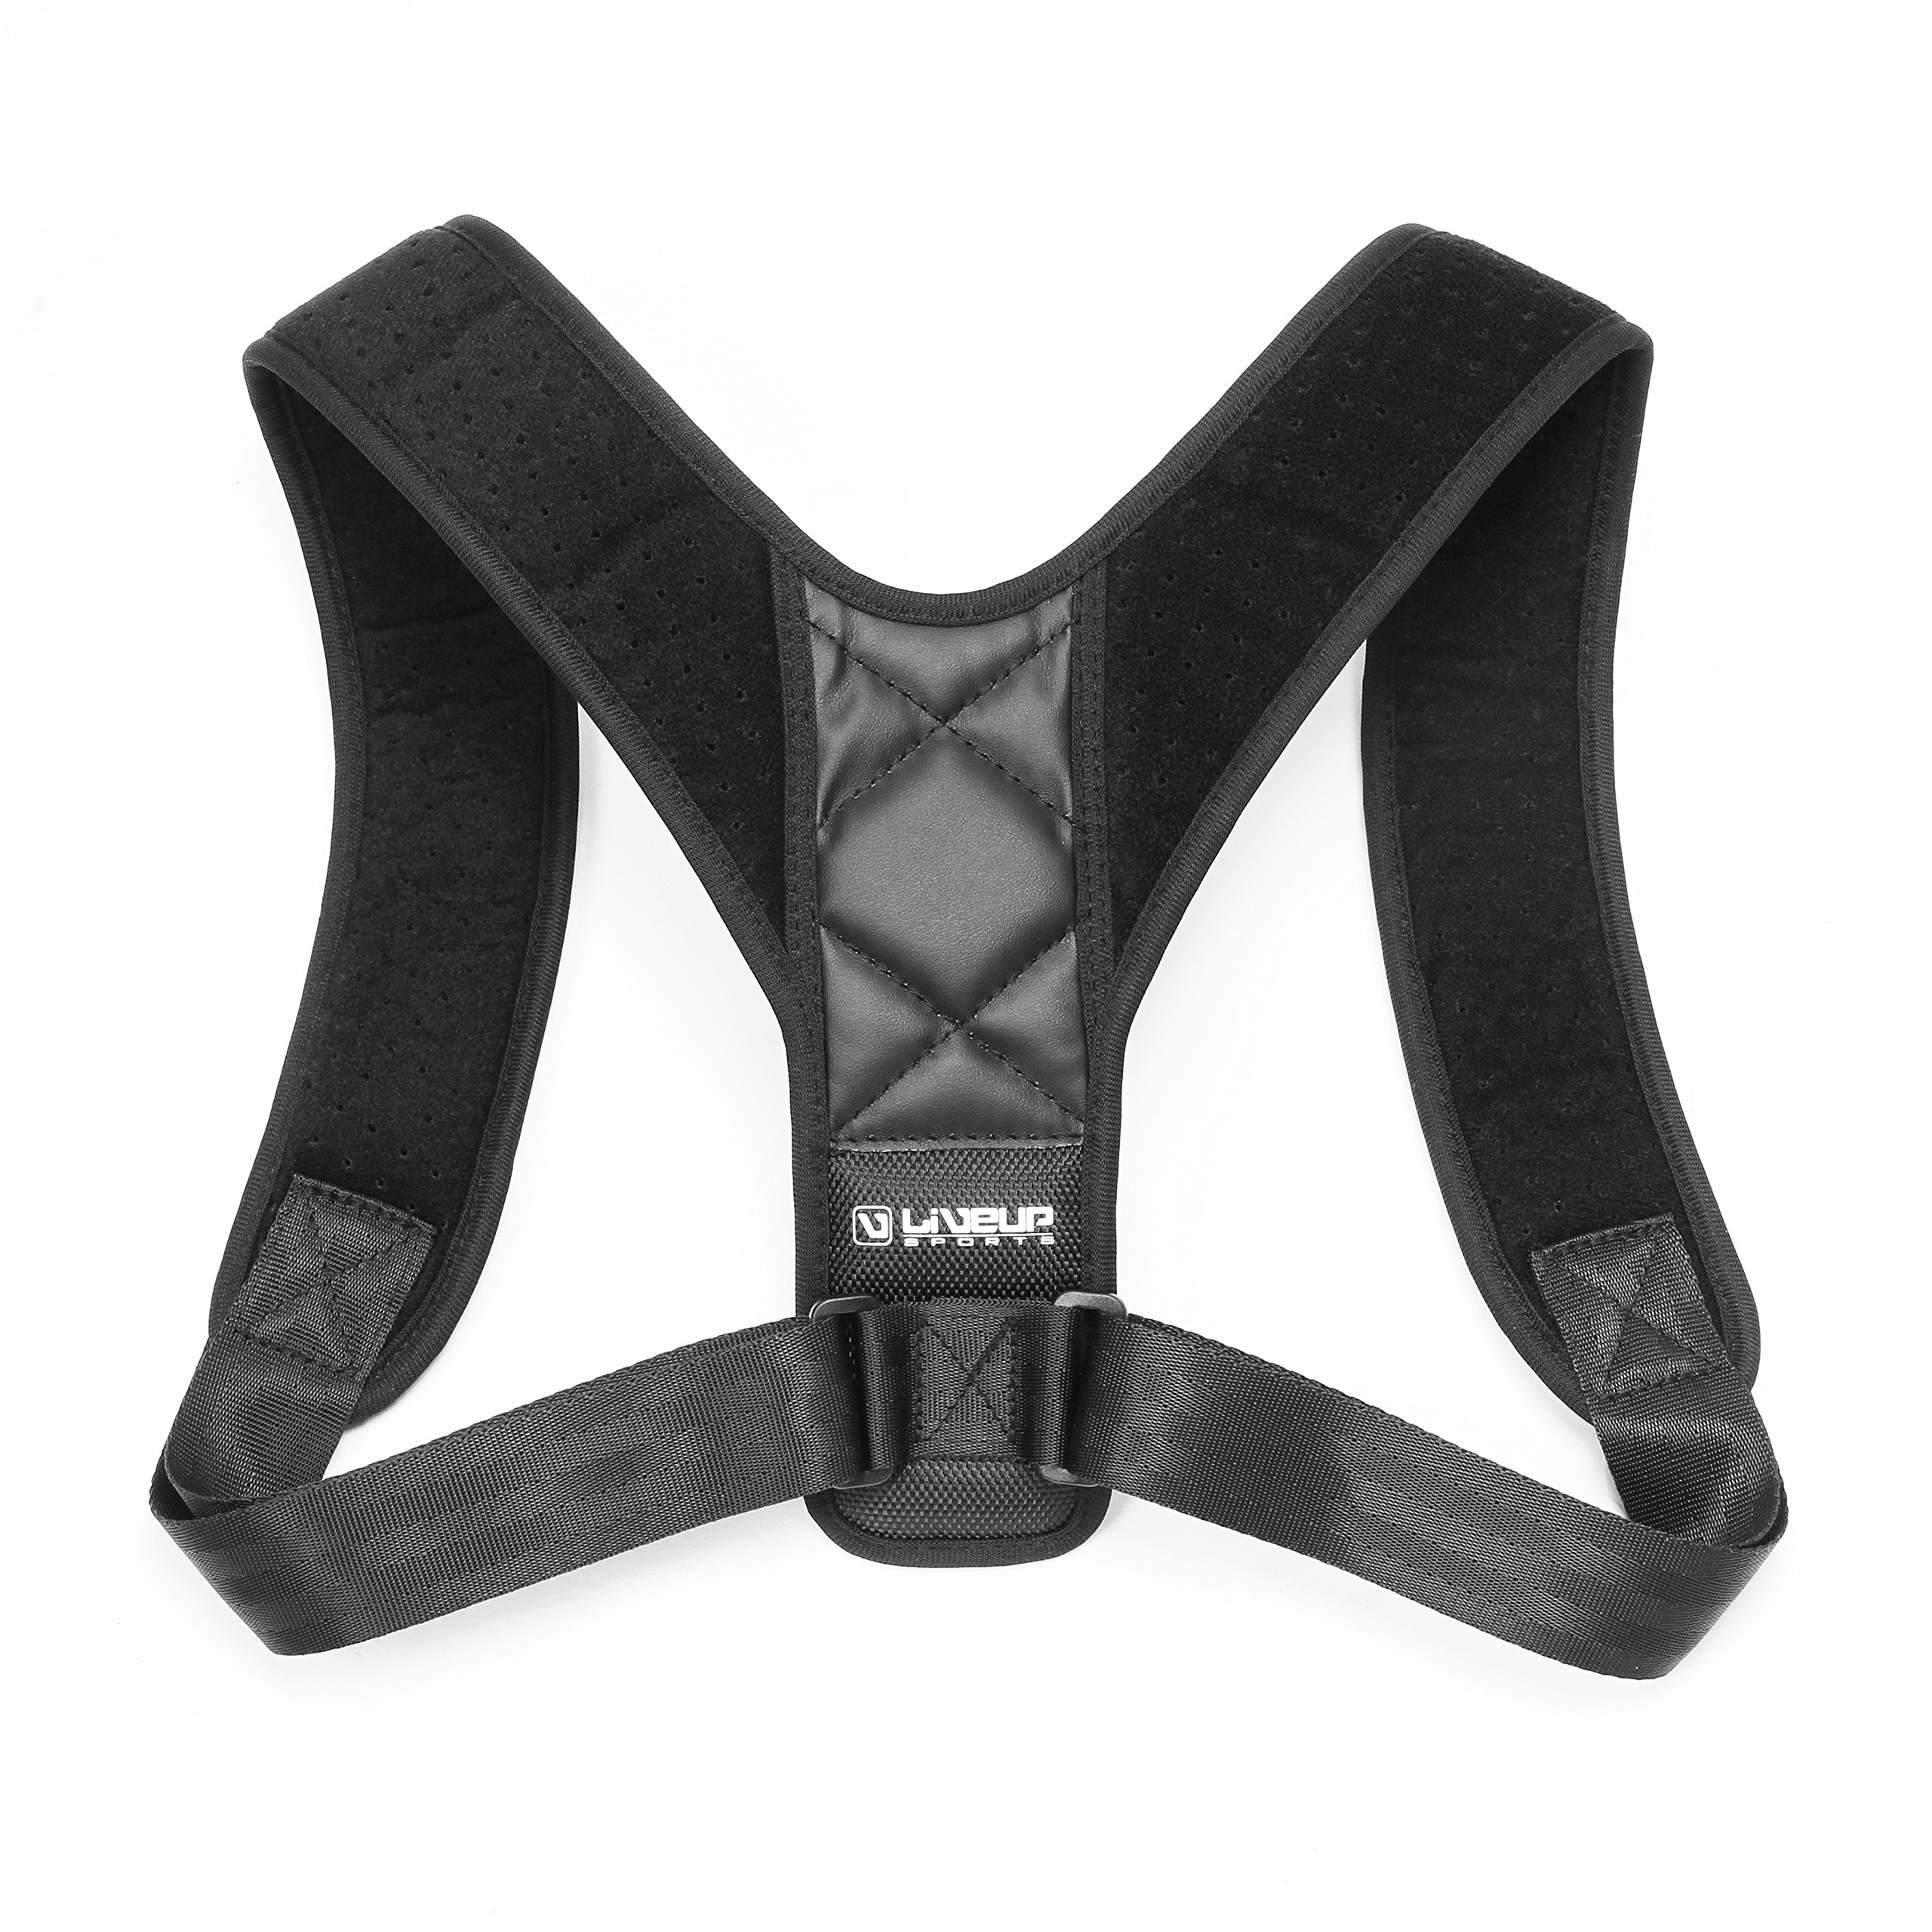 Posture Corrector for Women - Brace Shoulder Back Support Clavicle Brace Adjustable Figure 8 Training Muscles Spine Improve Posture Upper Back Pain Relief Extra Soft Breathable for Women and Men